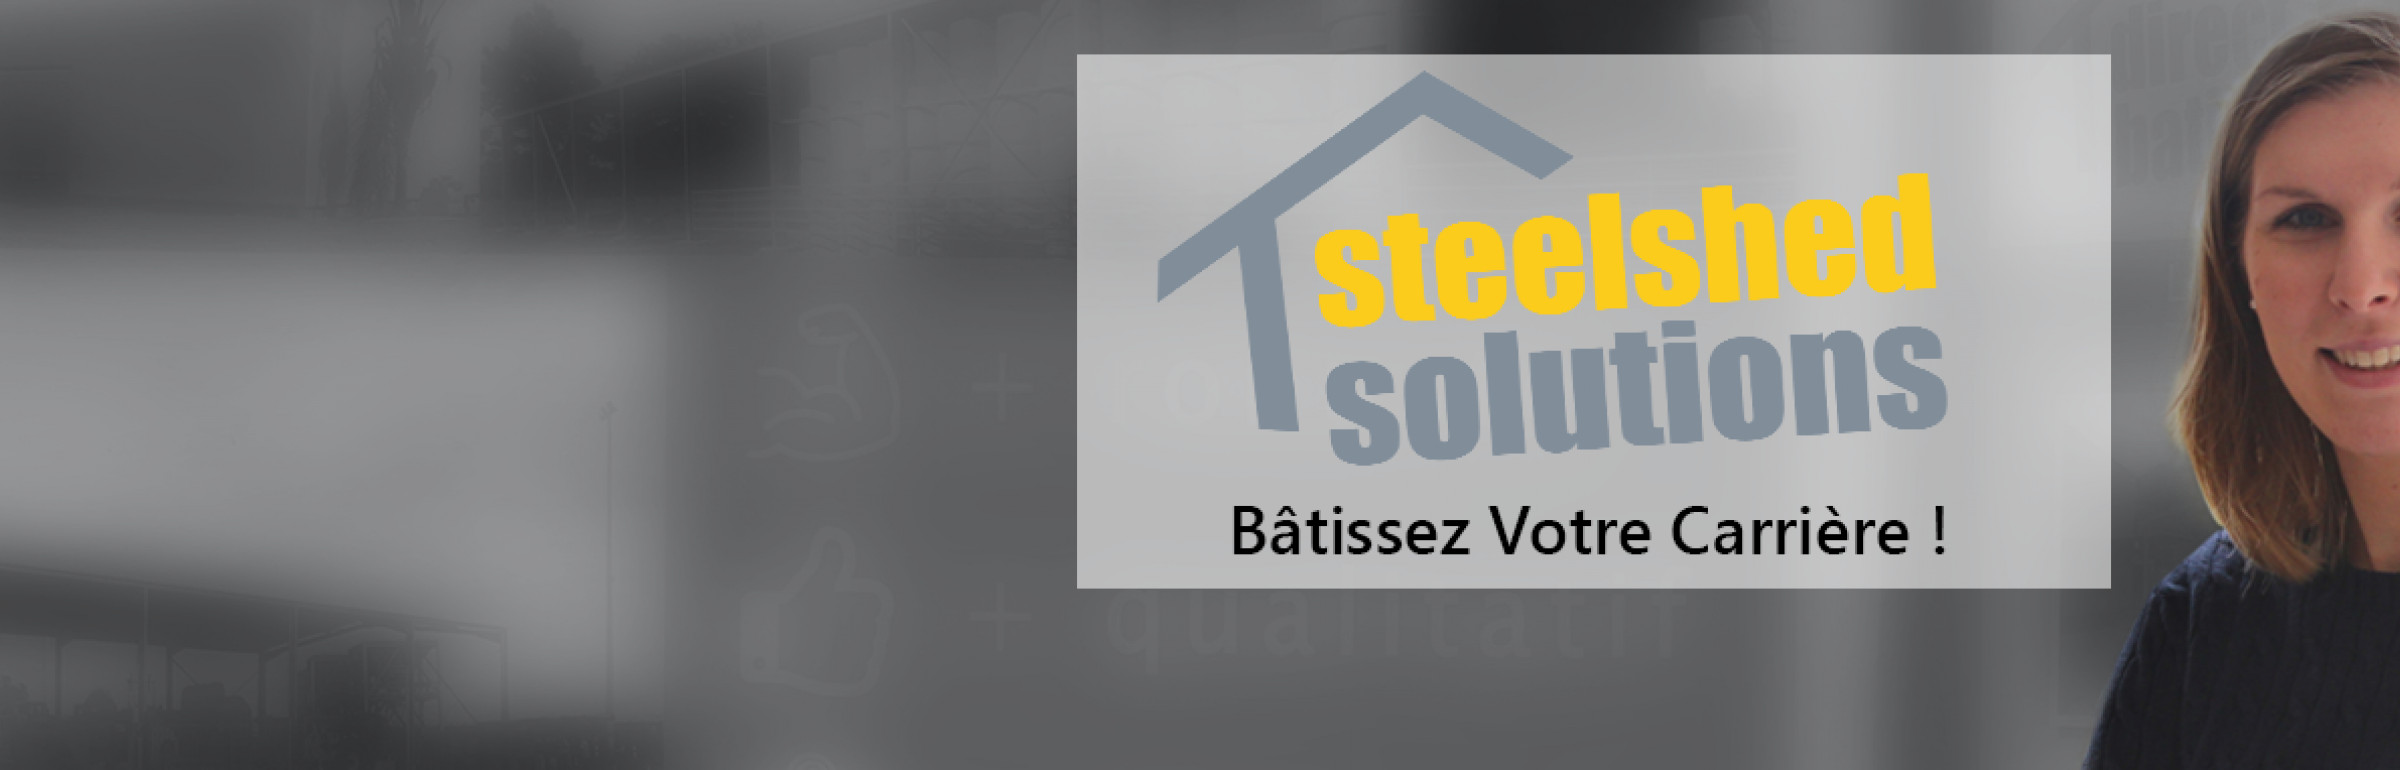 Banner Steel Shed Solutions